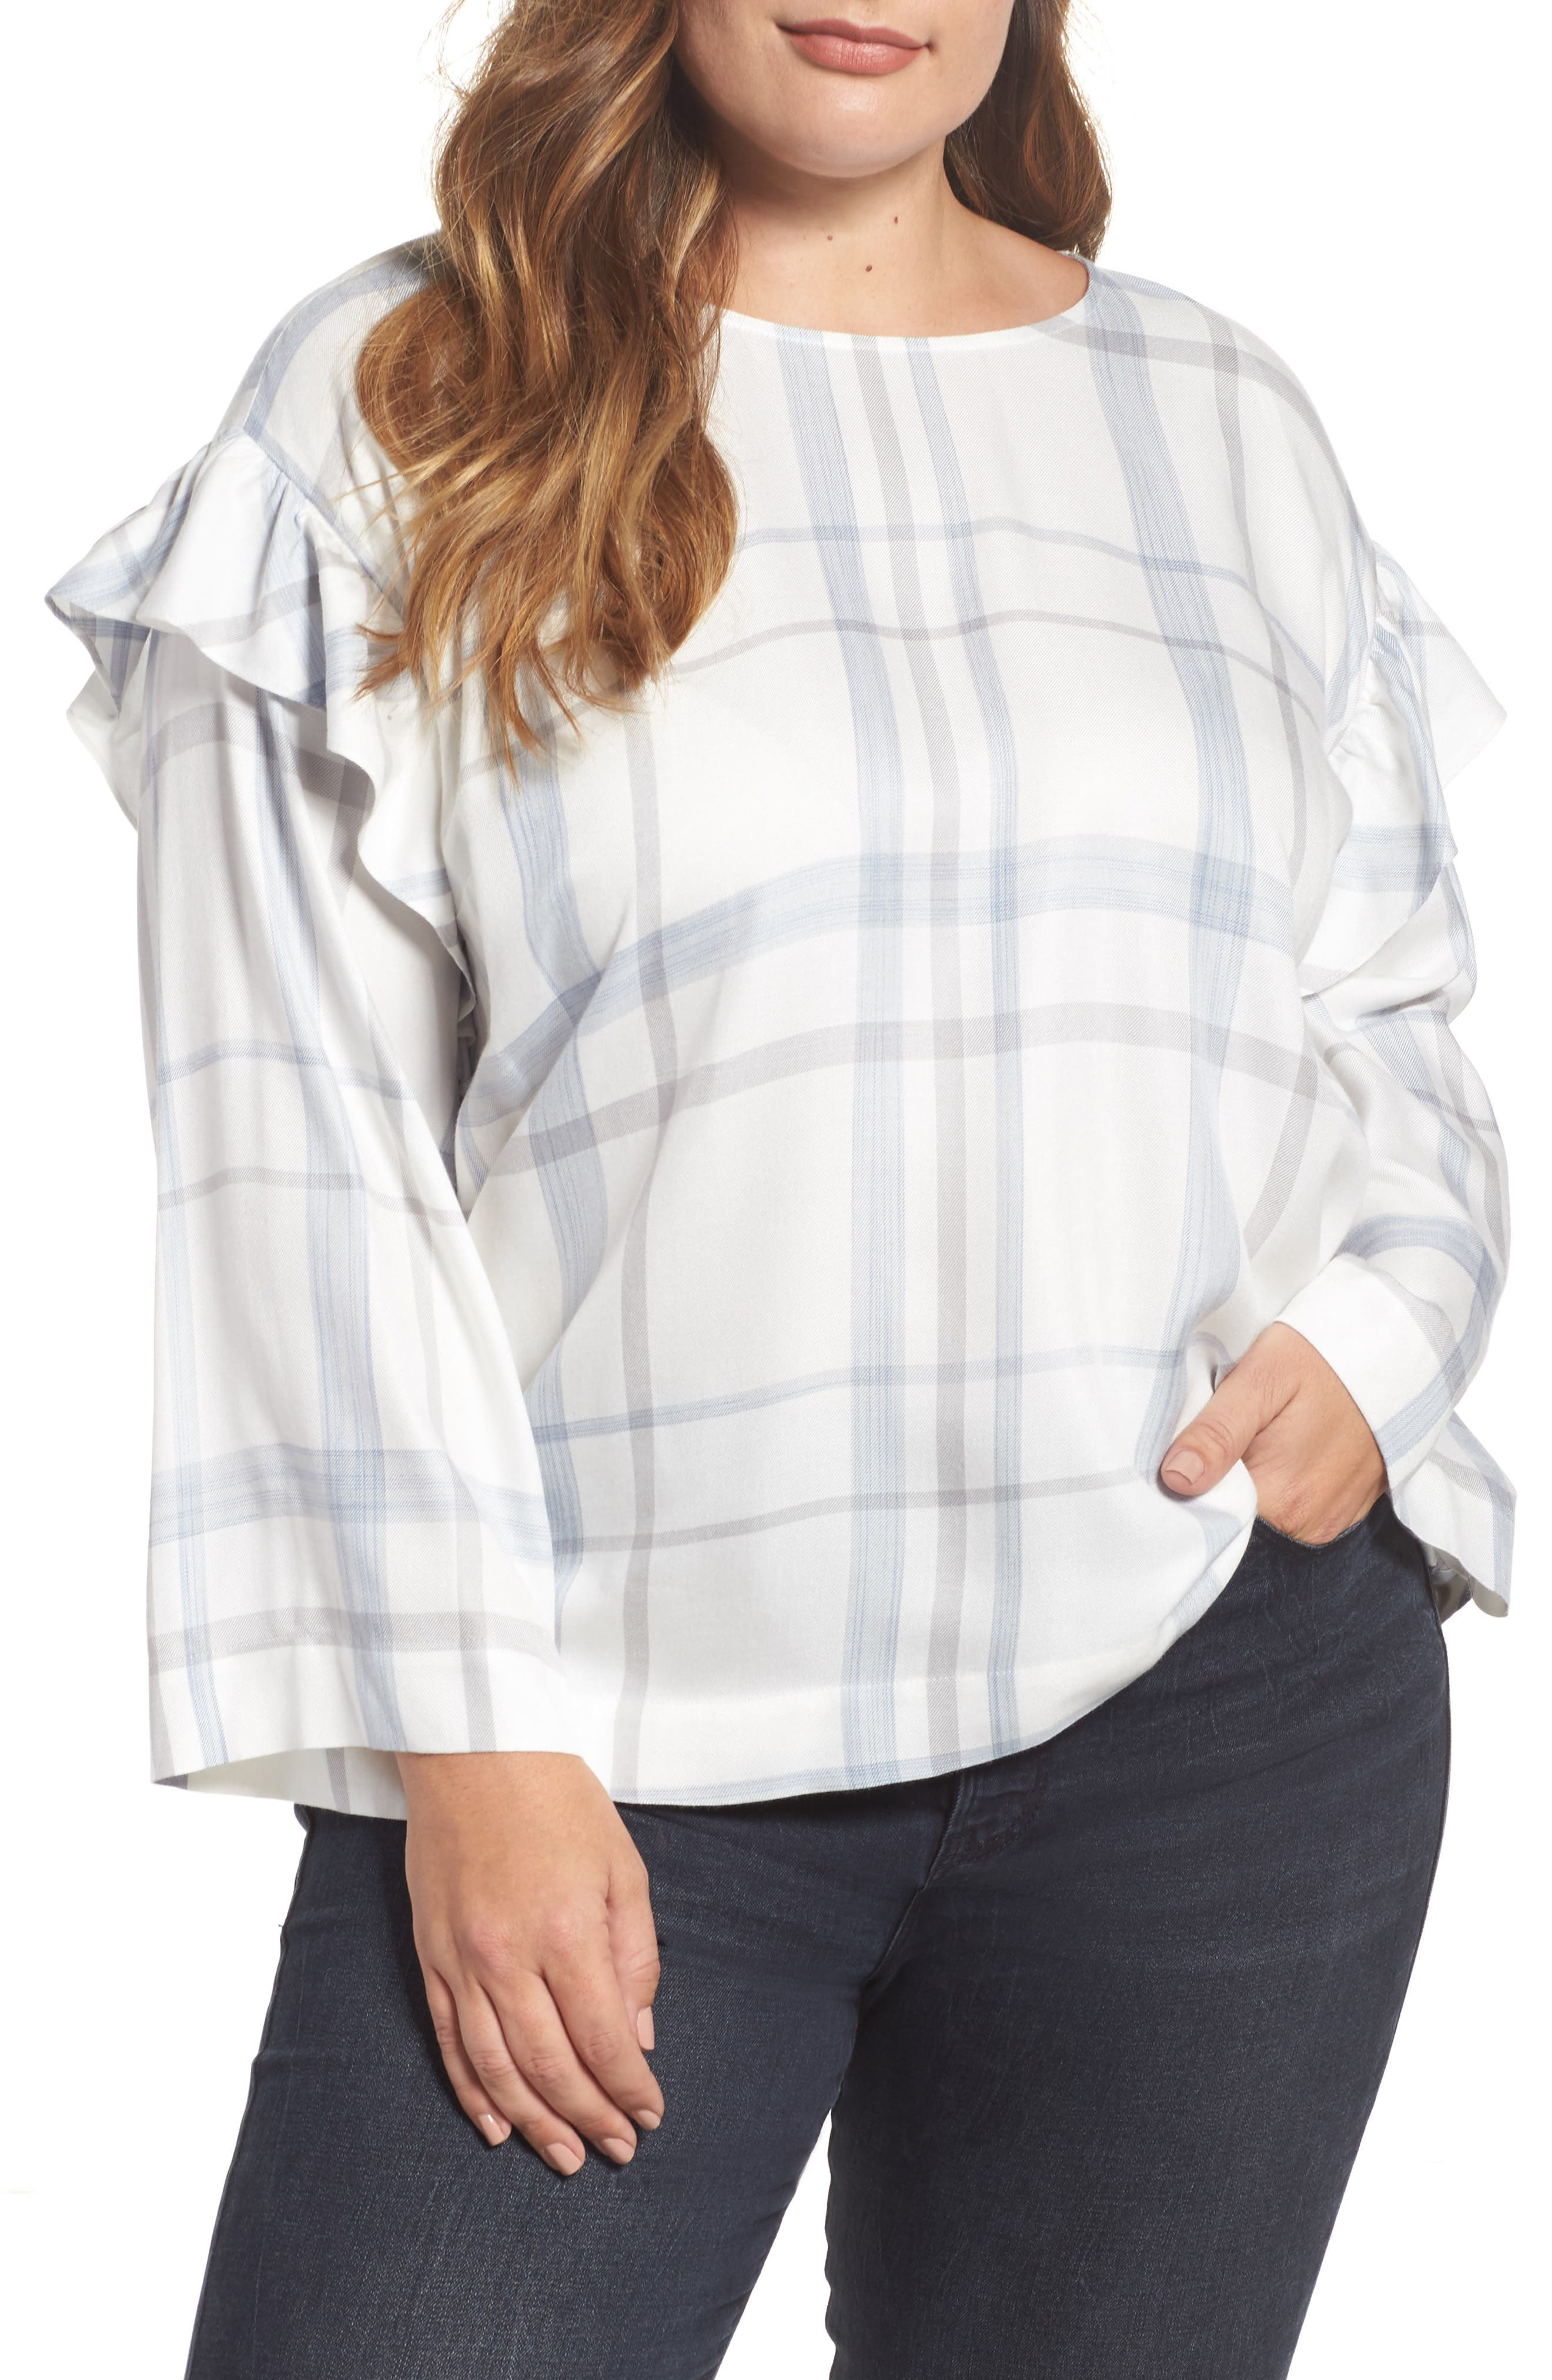 Main Image - Two by Vince Camuto Ruffed Sleeve Top (Plus Size)